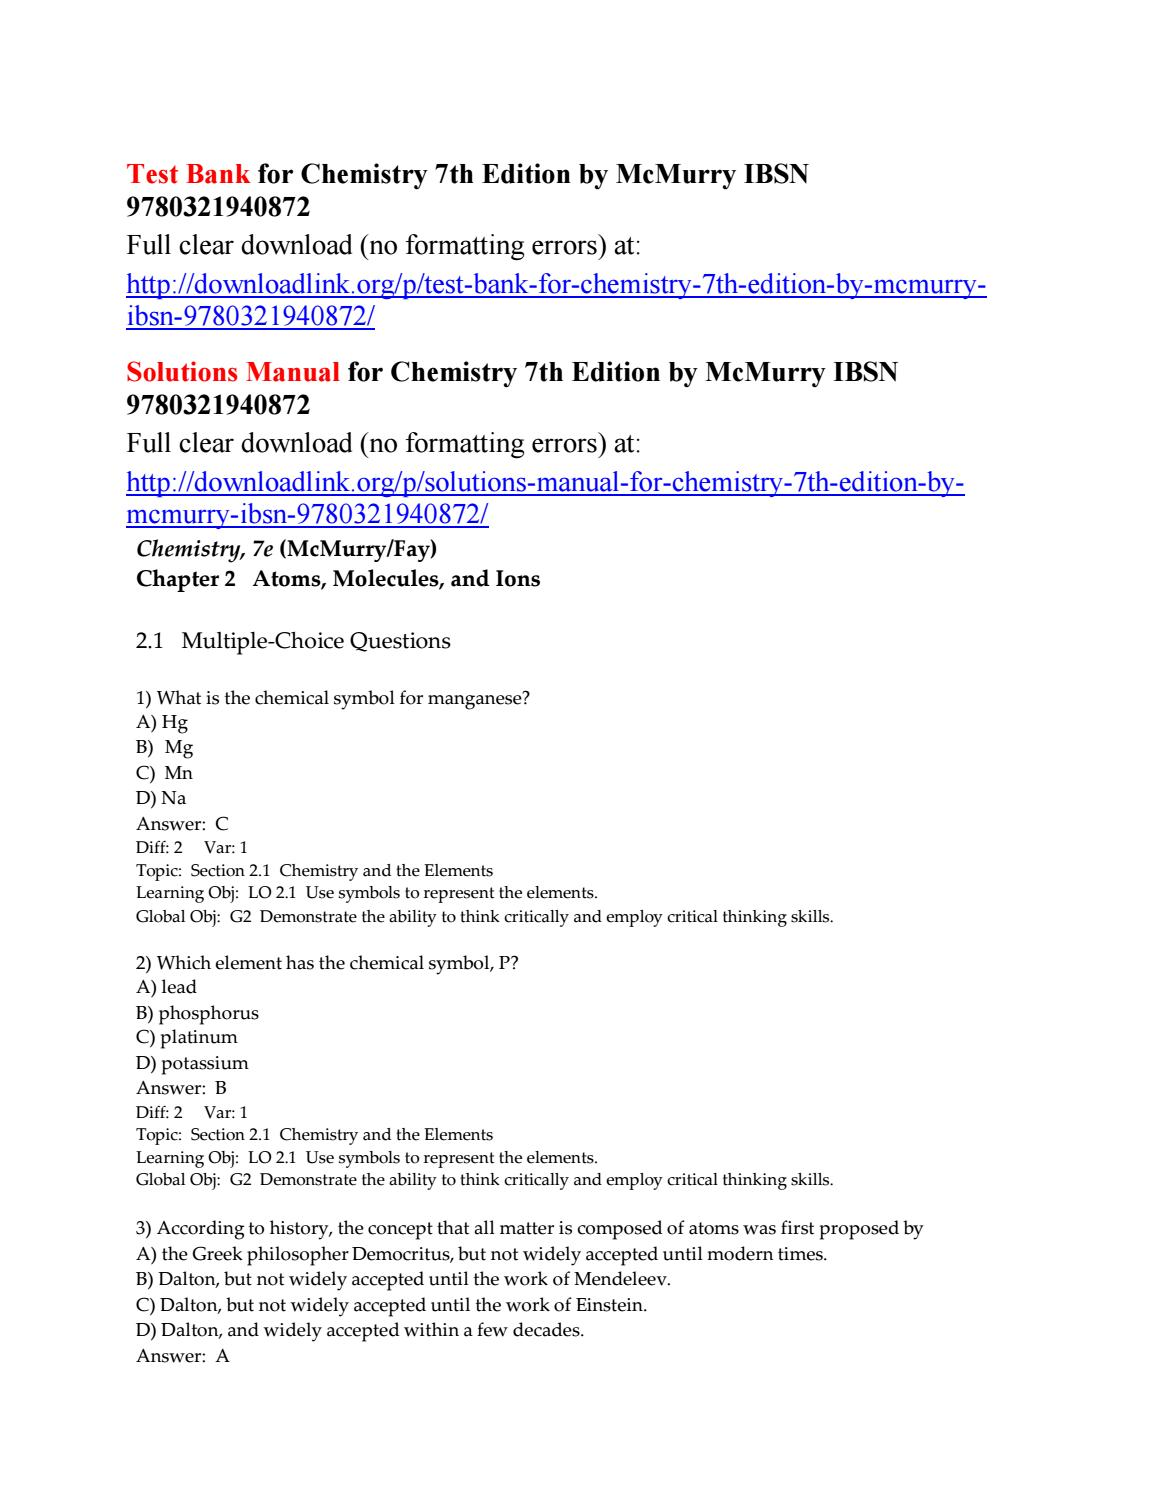 Test bank for chemistry 7th edition by mcmurry ibsn